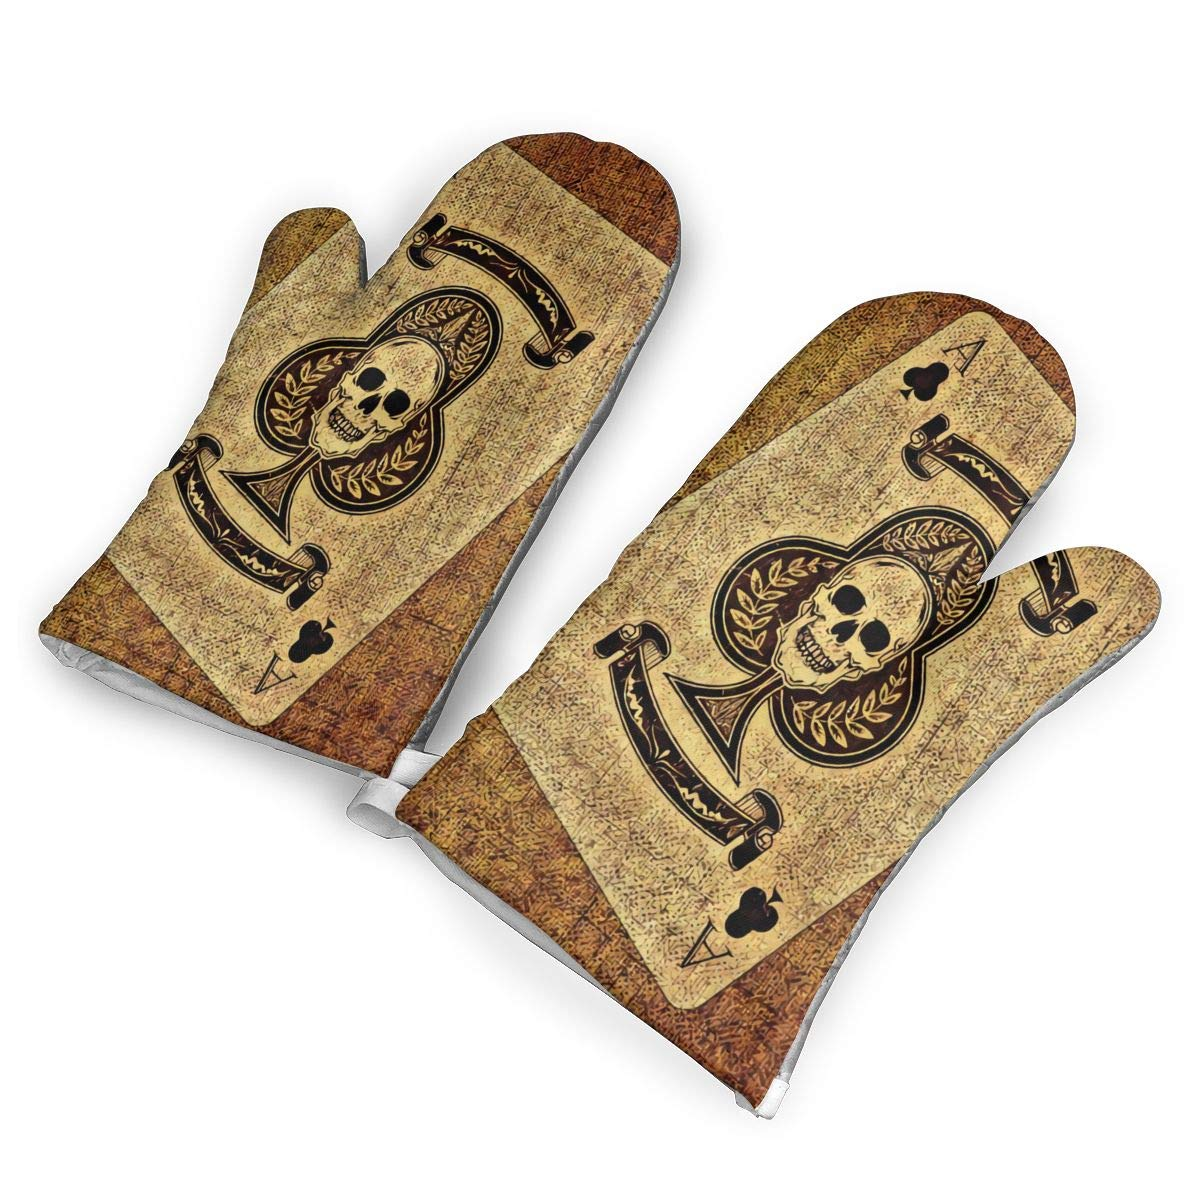 not Plum Card A Skull Oven Mitts with Polyester Fabric Printed Pattern,1 Pair of Heat Resistant Oven Gloves for Cooking,Baking,Grilling,Barbecue Potholders